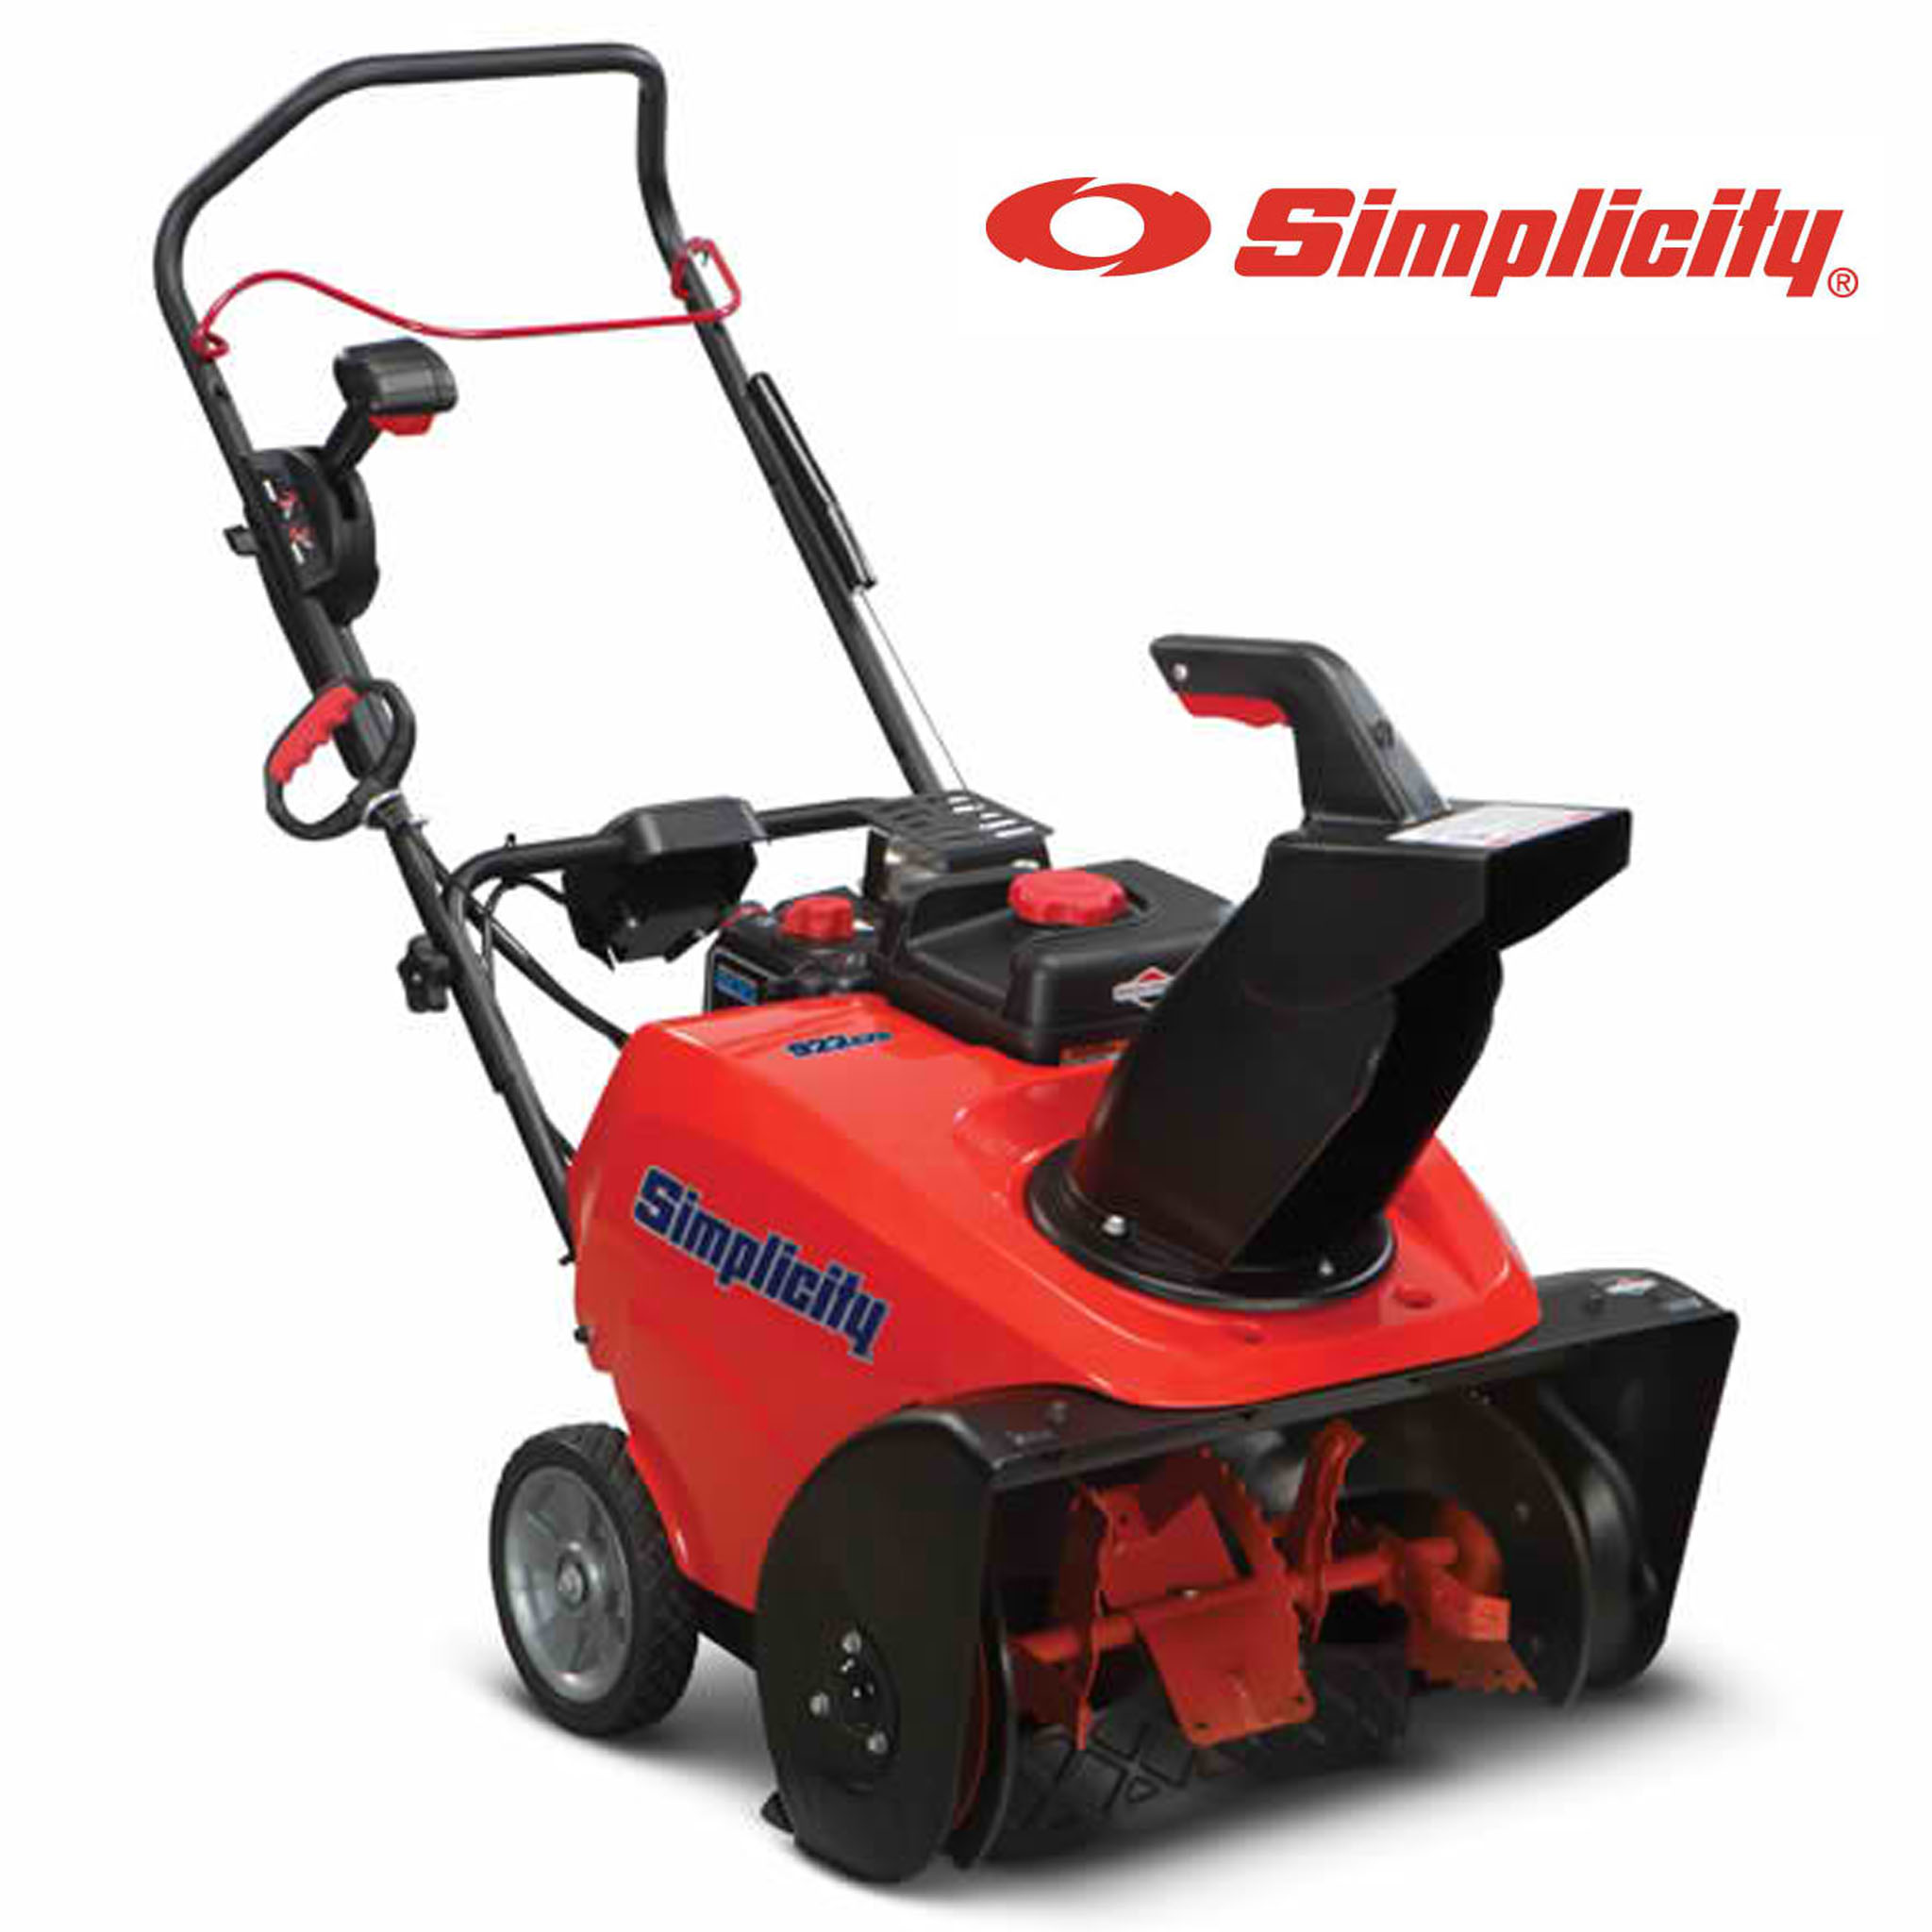 simplicity best snow blower brands meet the companies behind your tools  at honlapkeszites.co